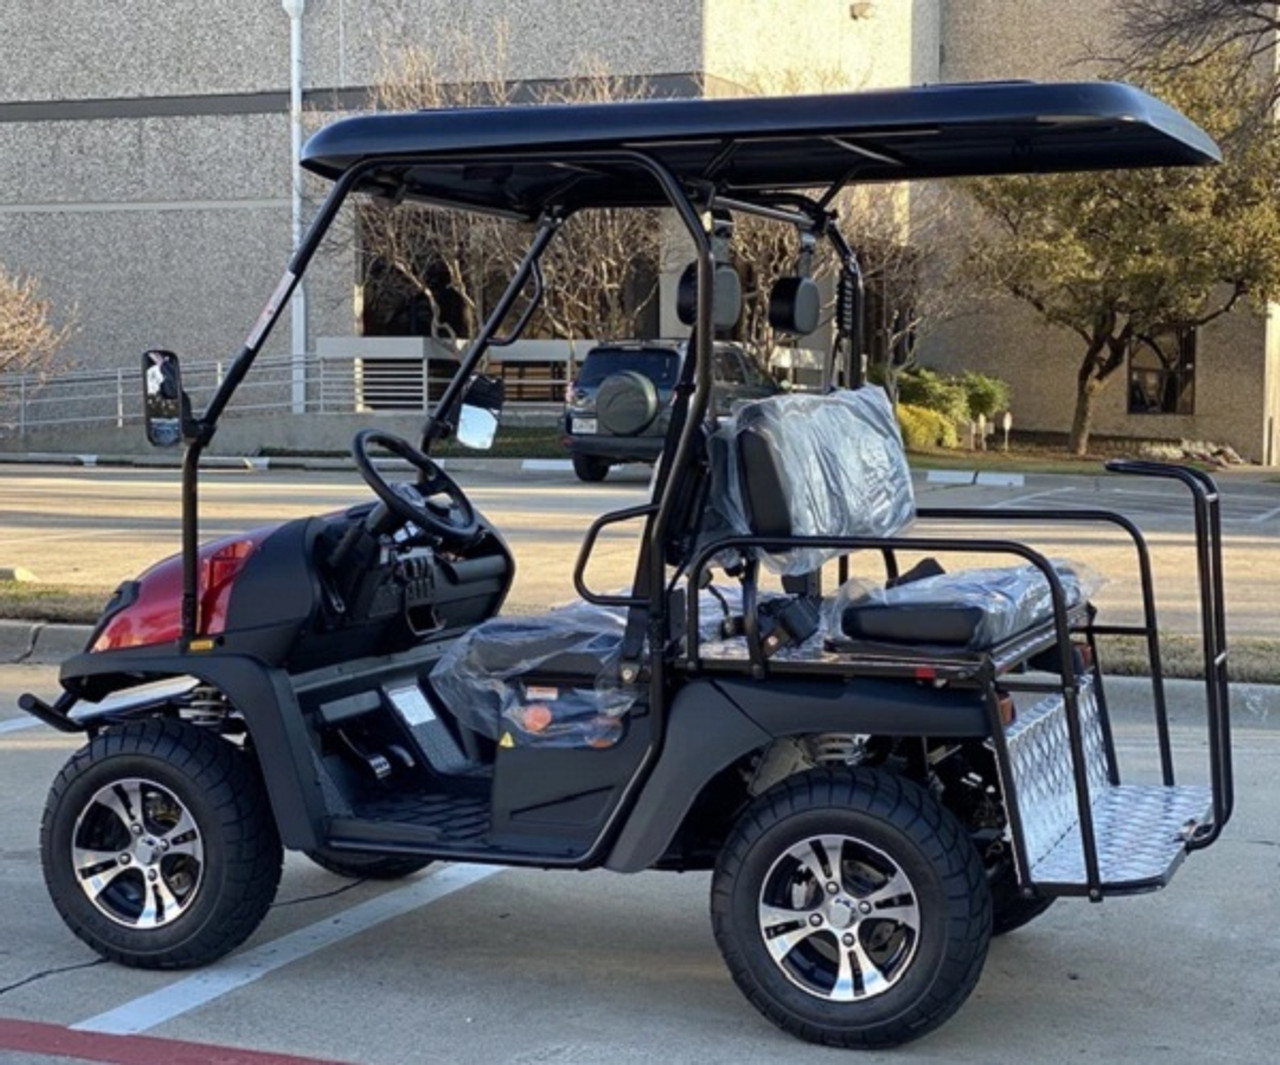 BLACK FIBER - Cazador Outfitter 200x Fully Loaded Golf Cart 4 seater